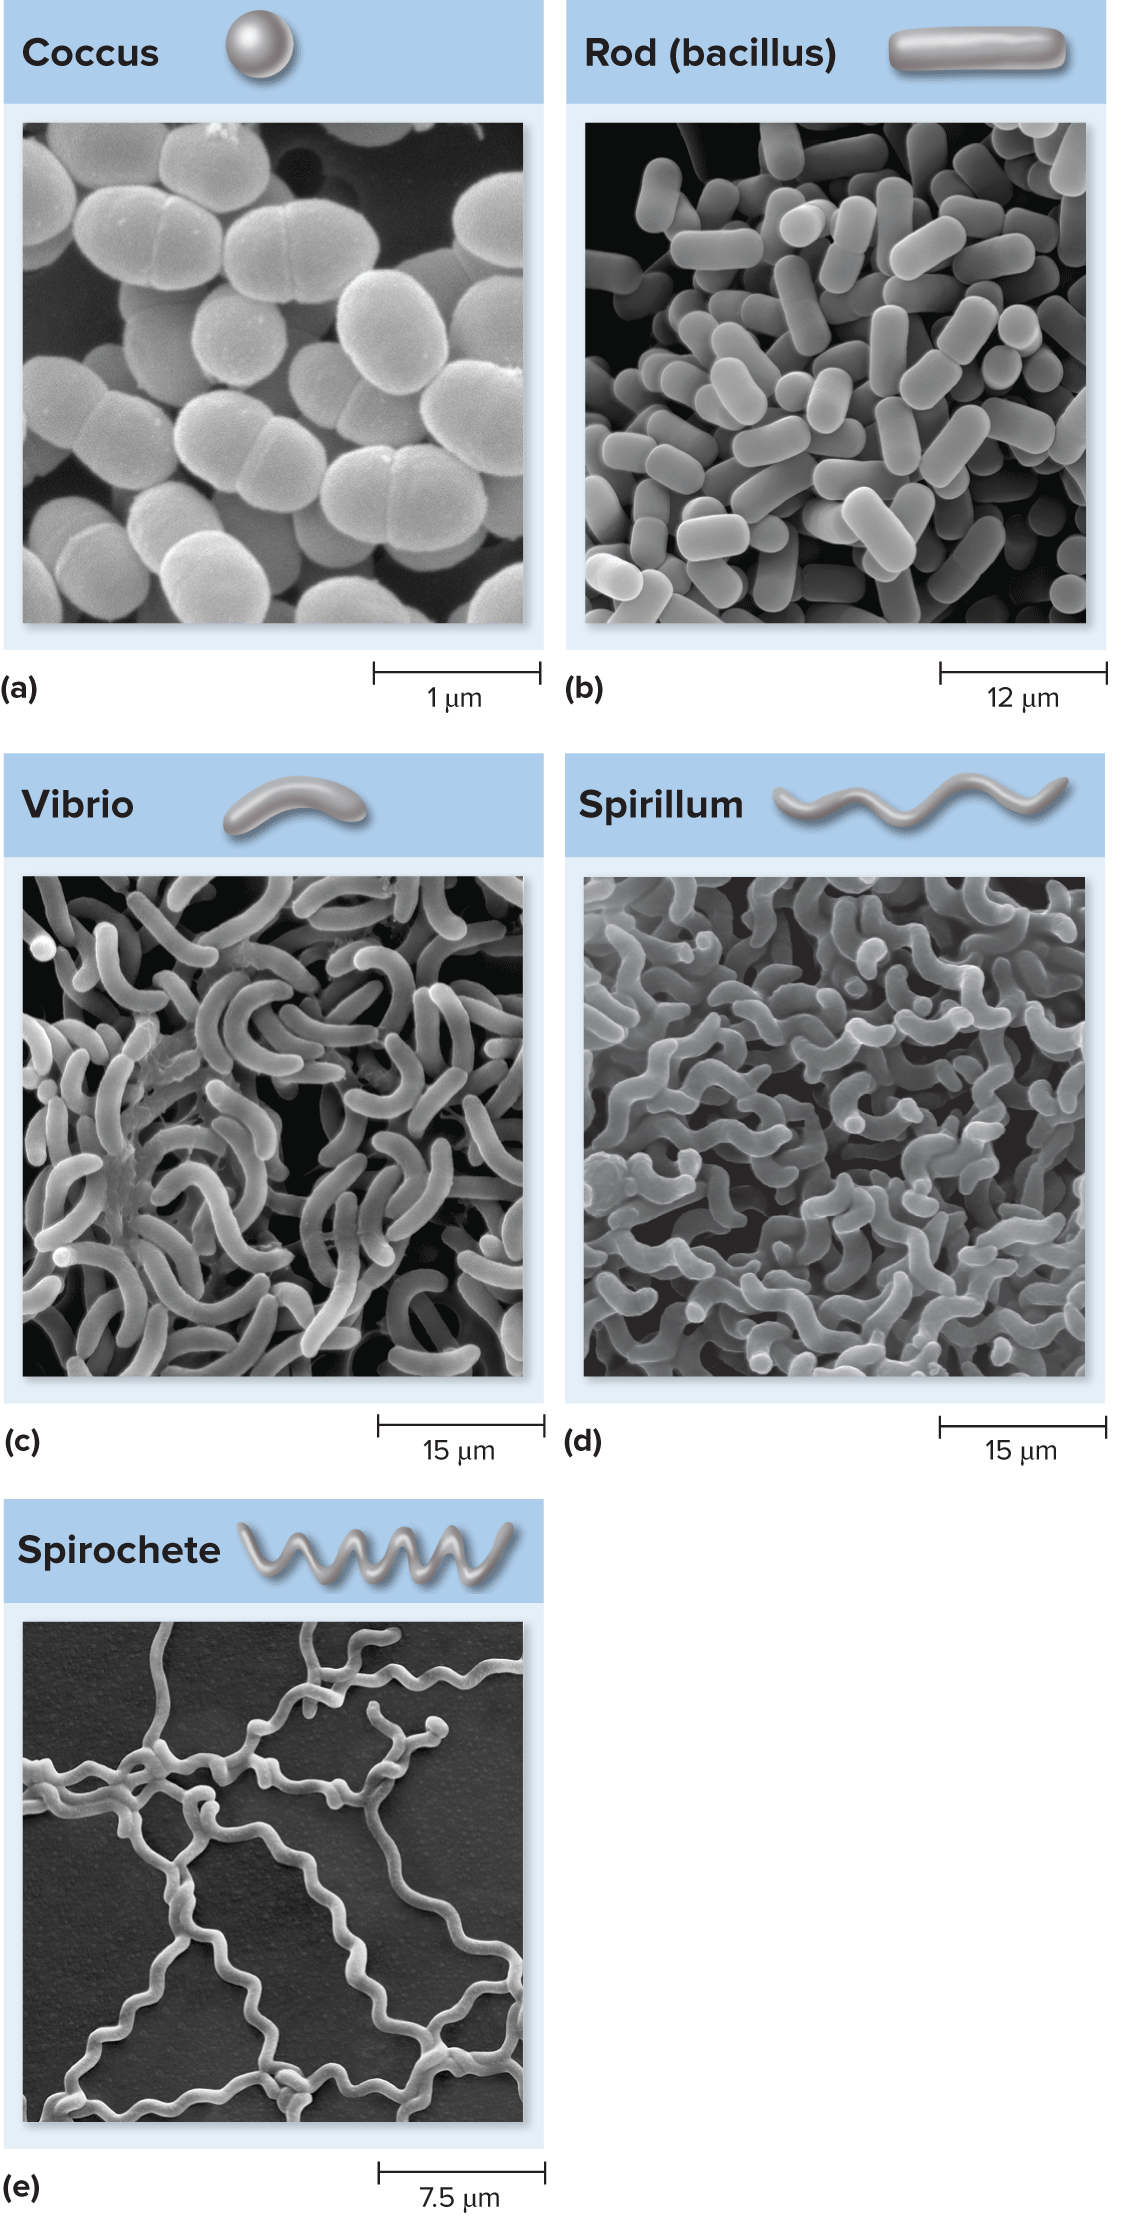 Bacteria Shapes With Images